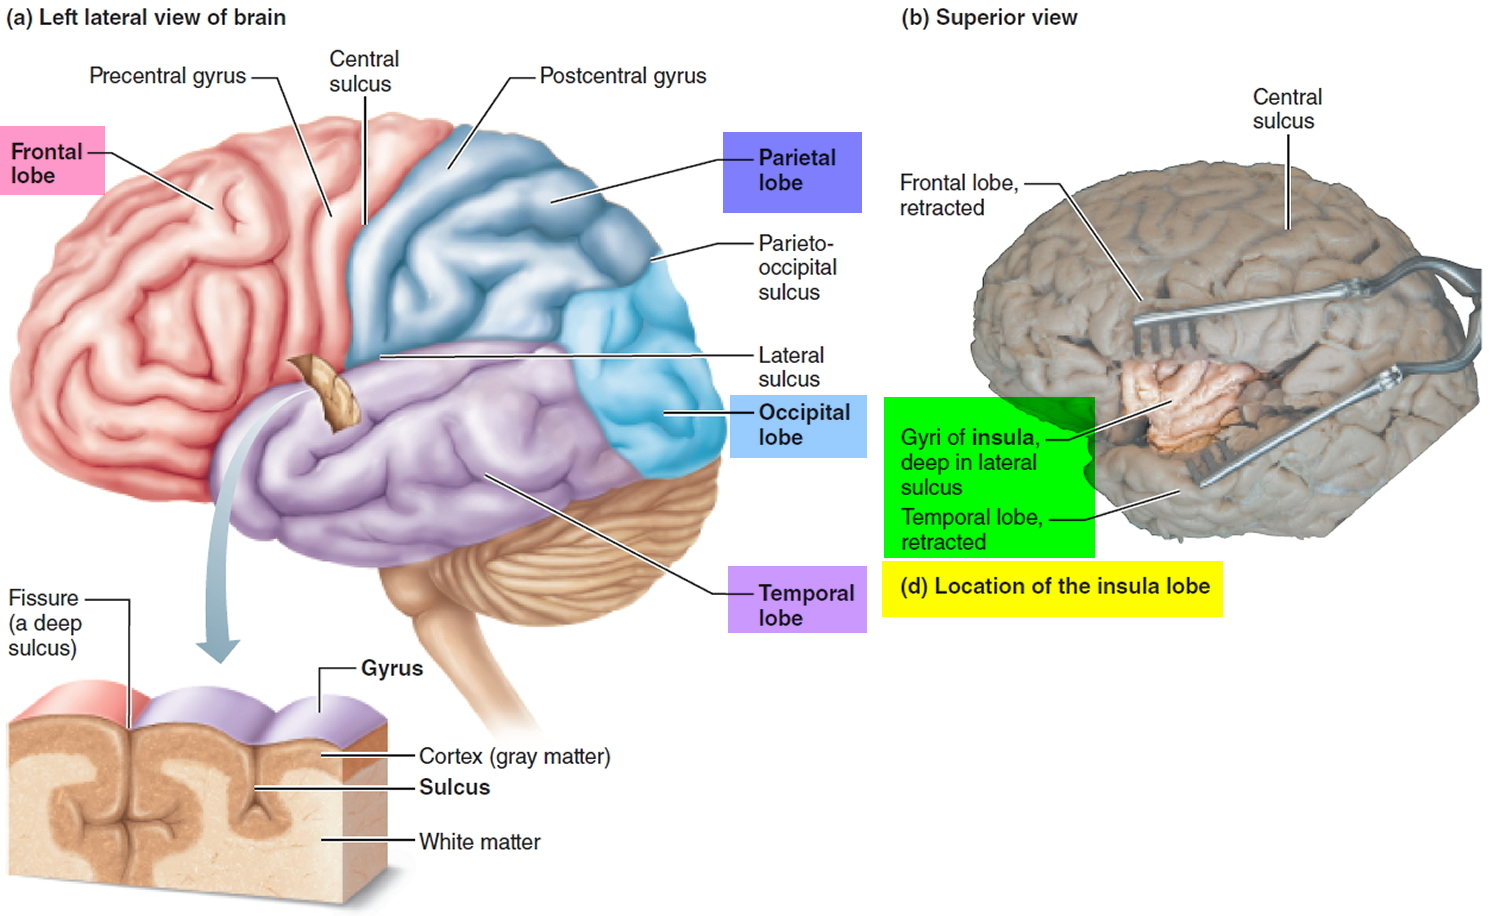 anatomy of the frontal lobe images human anatomy learning